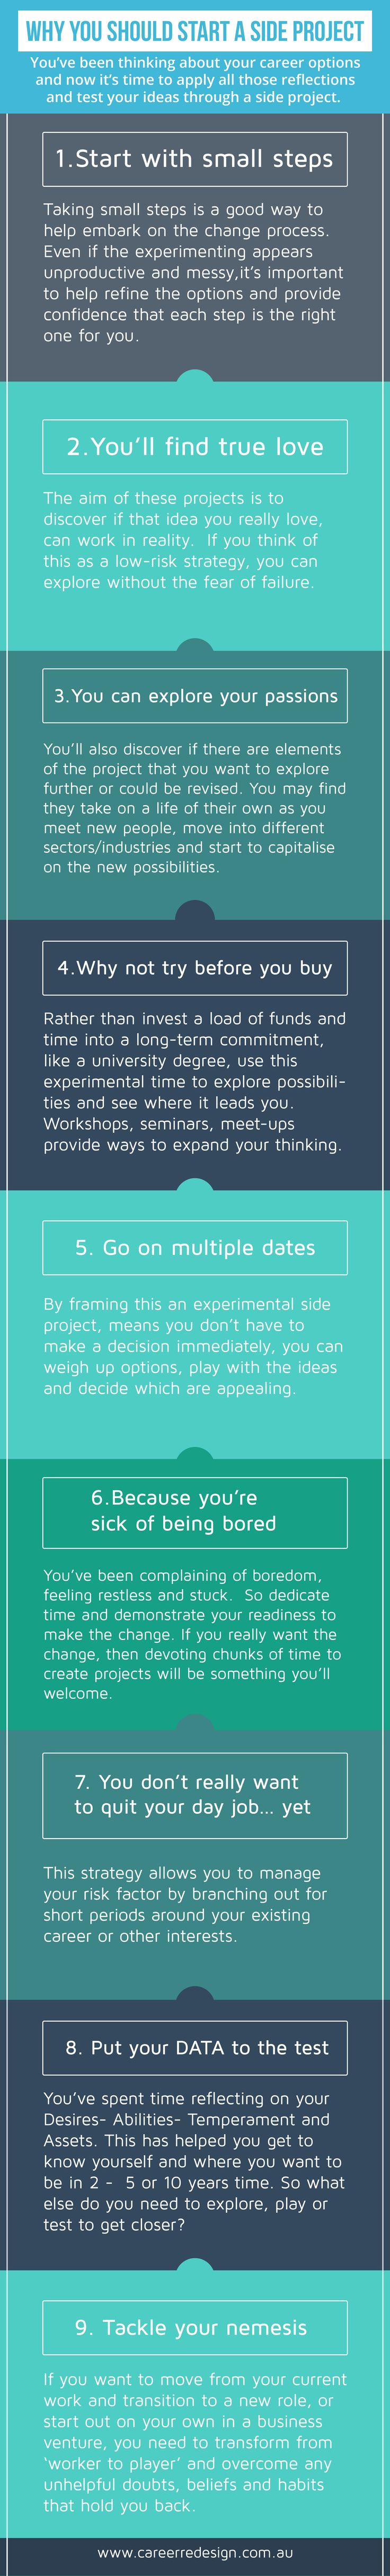 Side Projects are a great way to explore your career options. Feel free to download and share this poster.... be inspired and stay inspired!